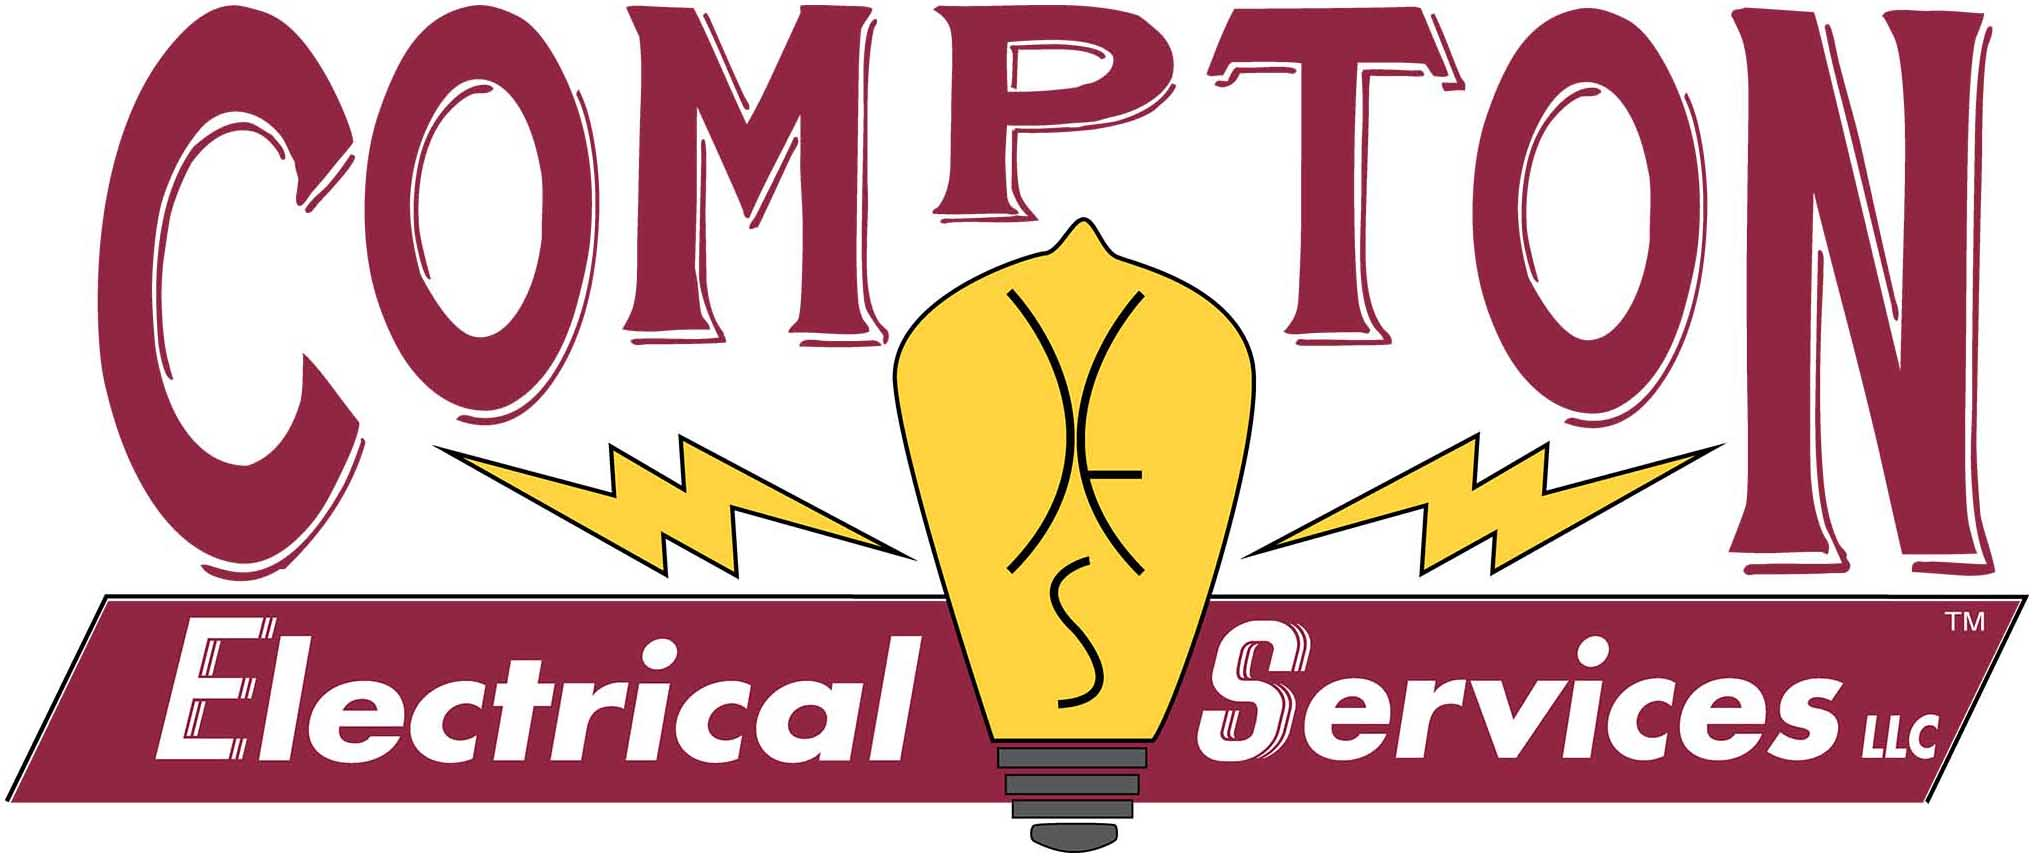 Compton Electrical Services logo